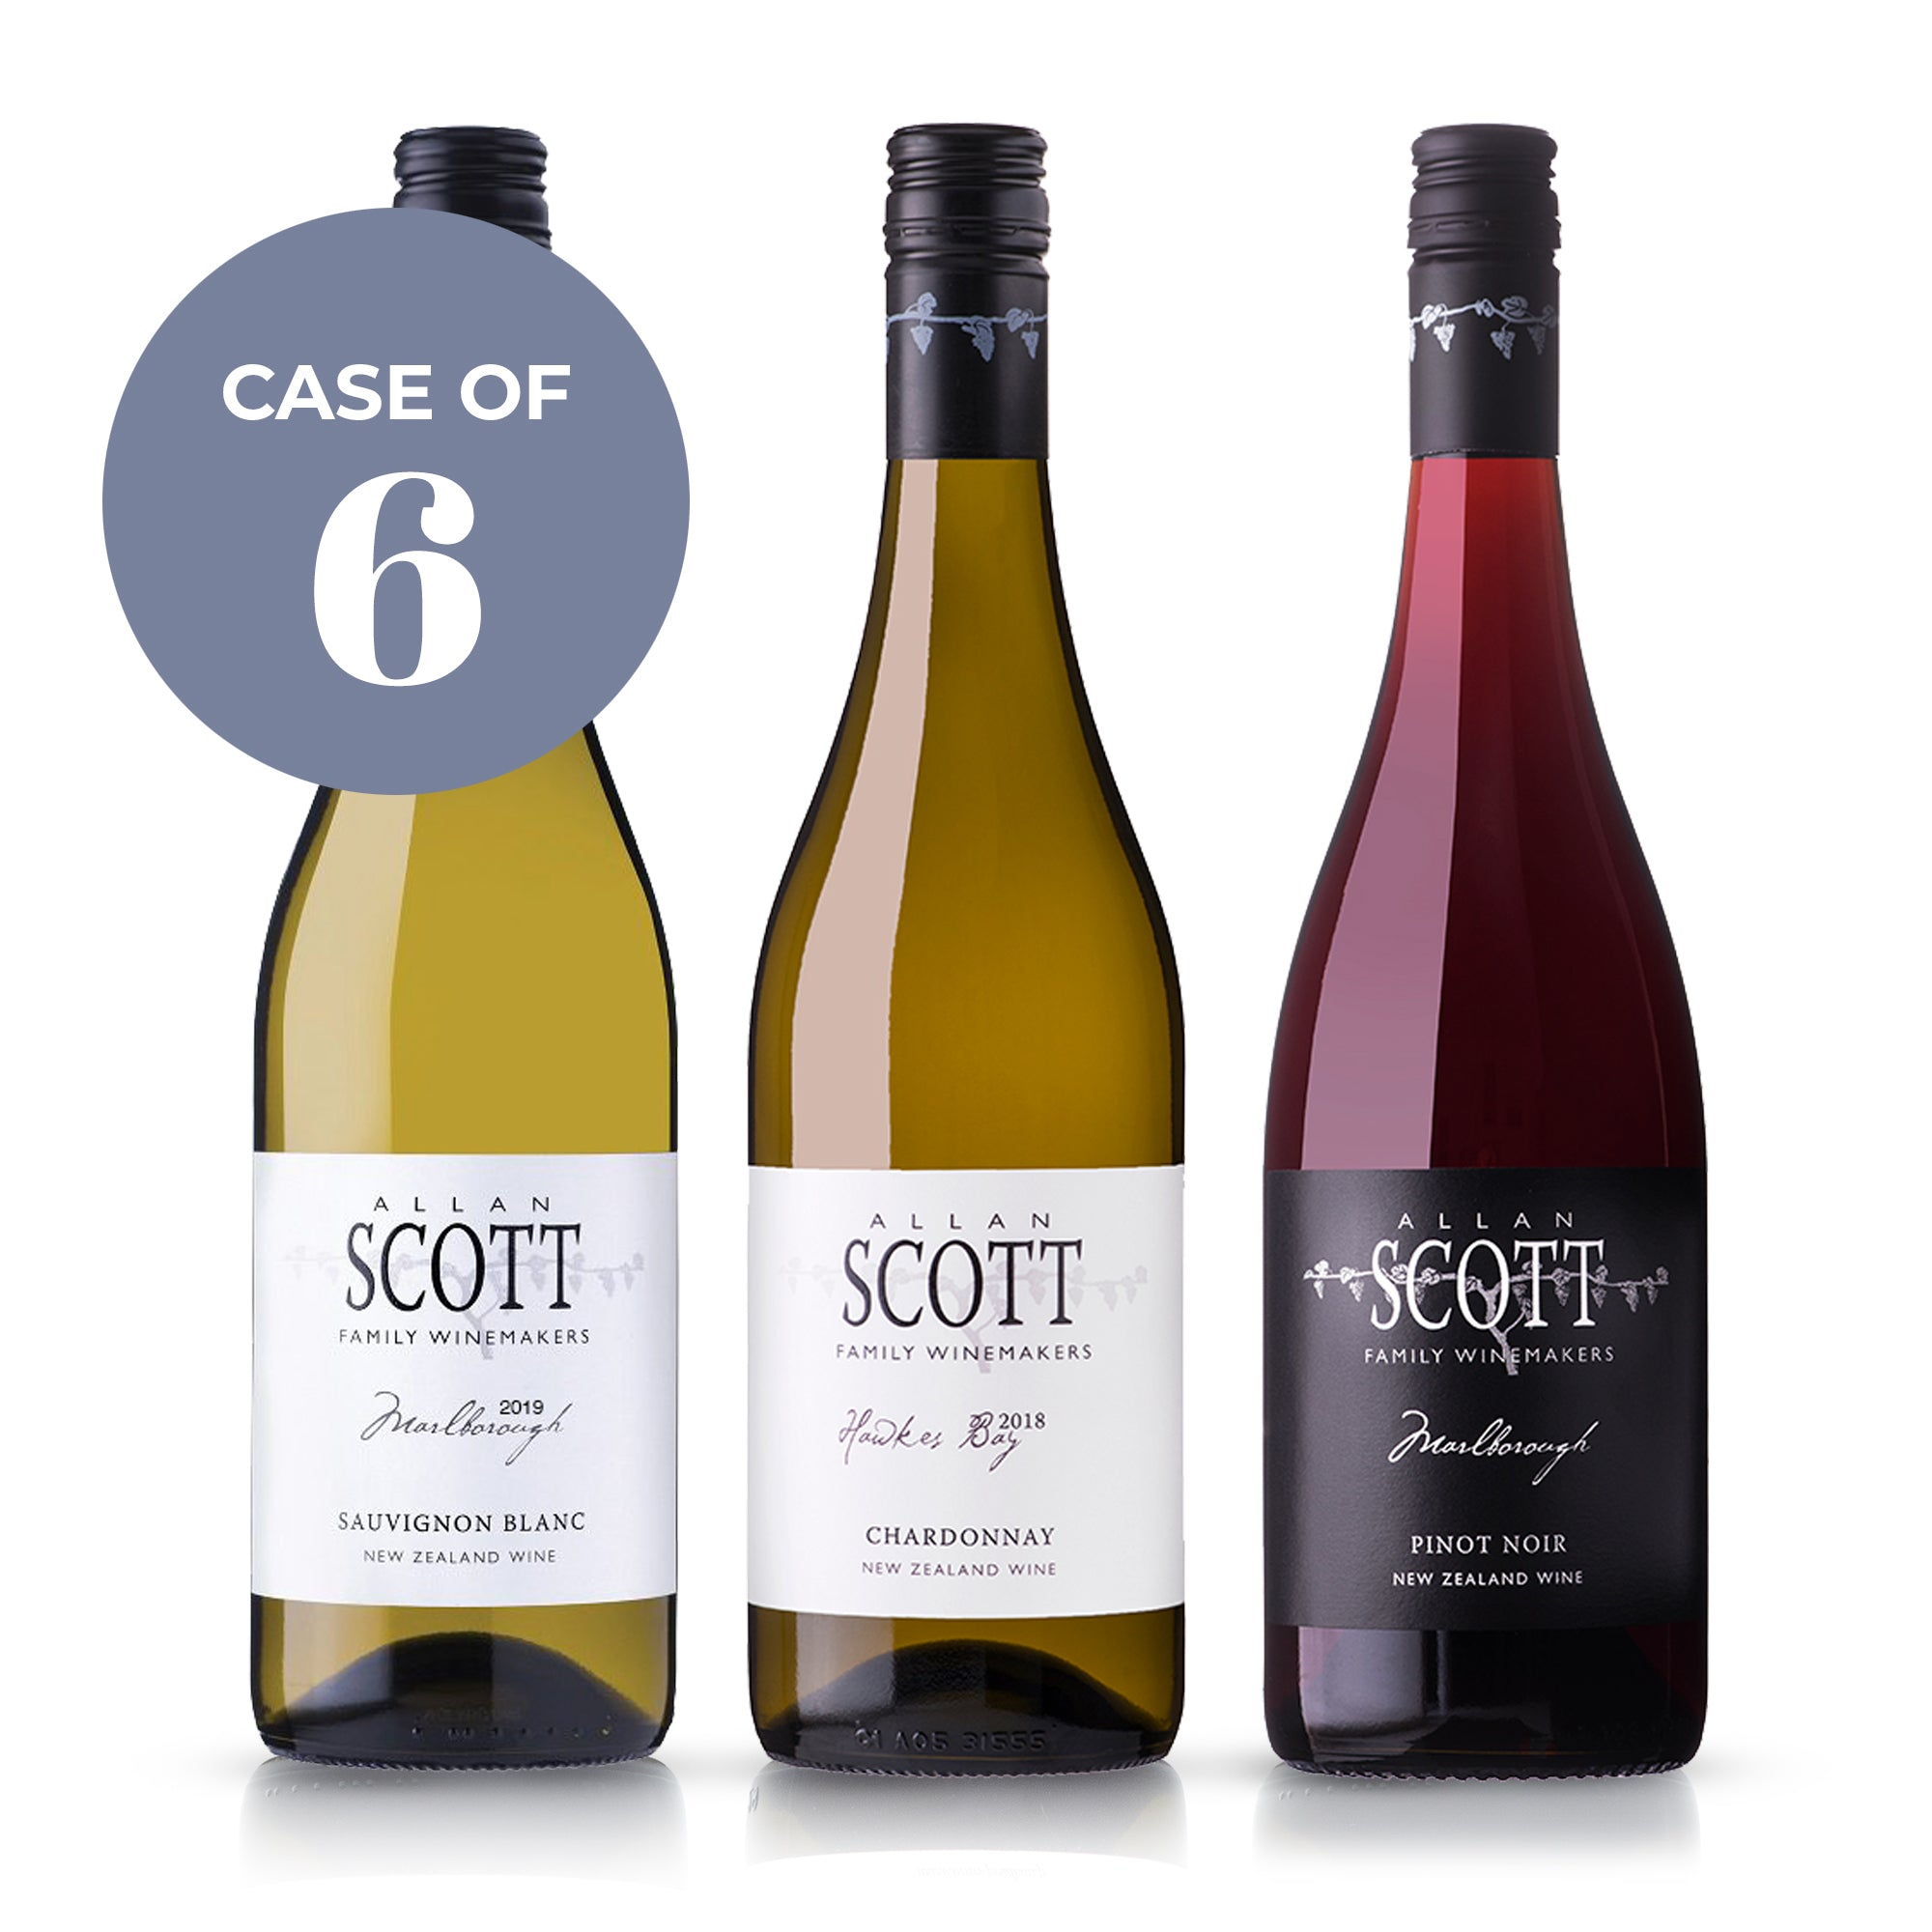 Allan Scott Wines, Mixed case - Featured Producer